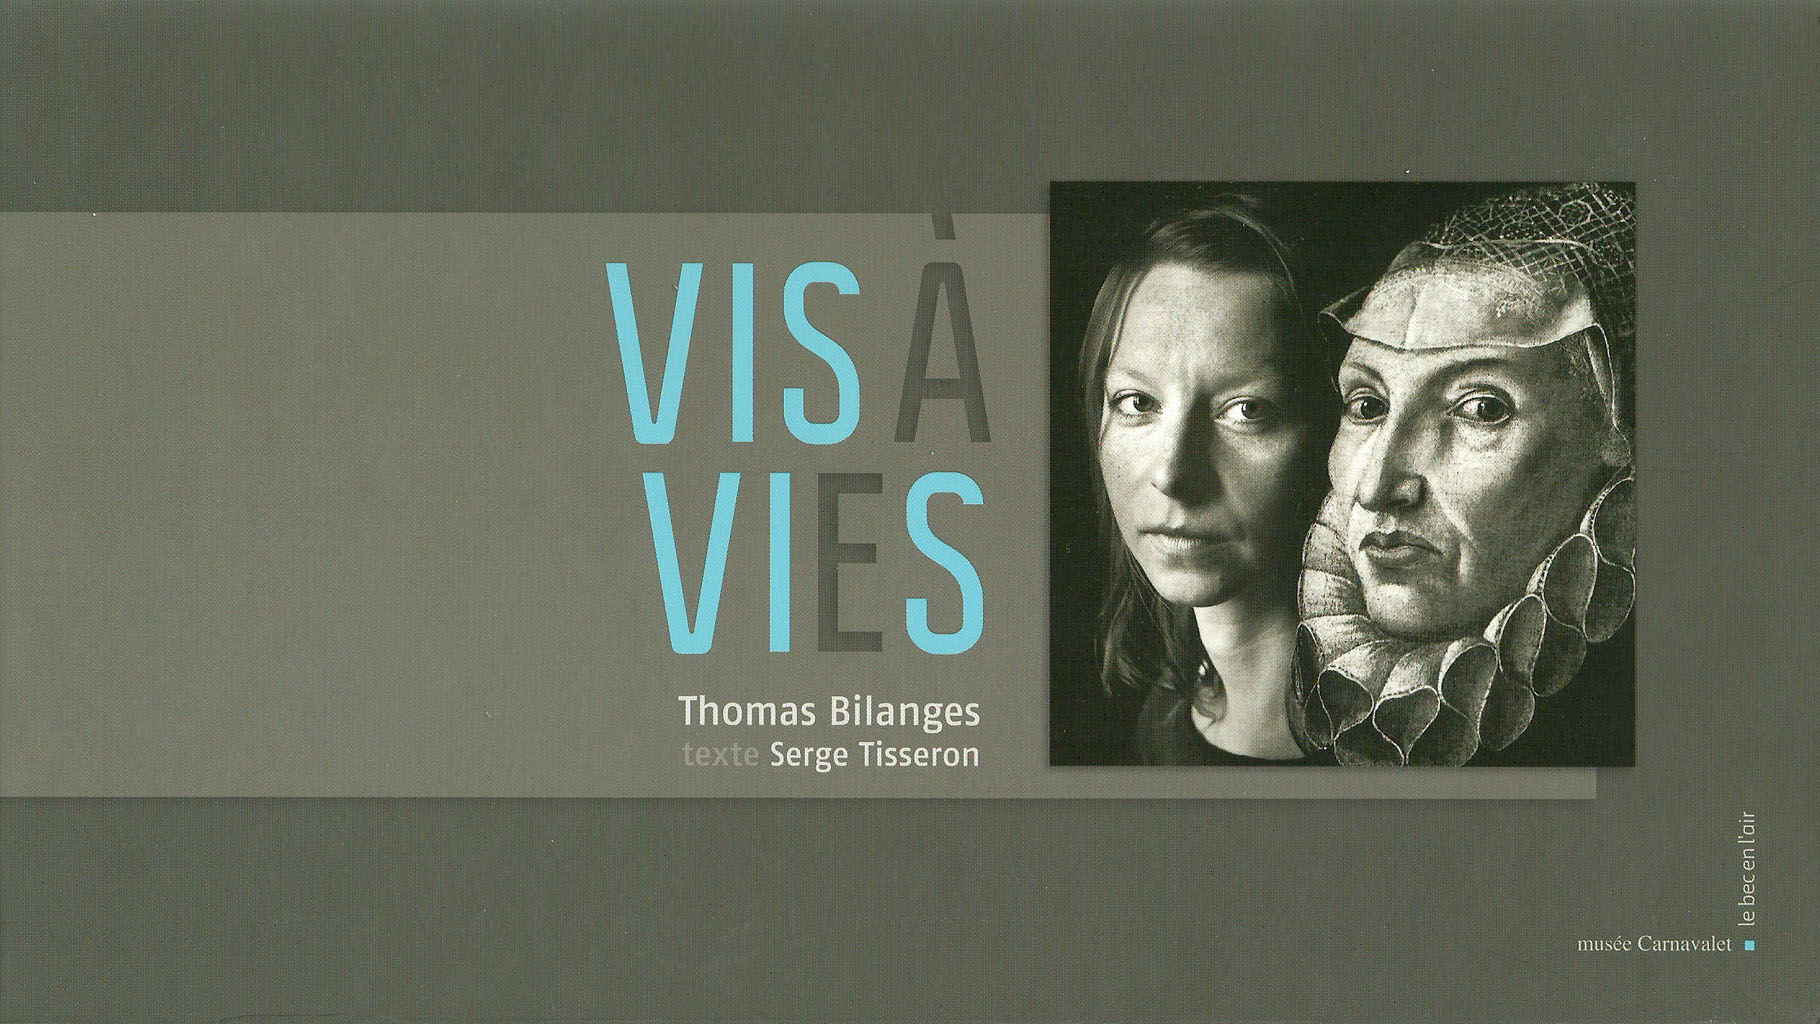 Vis-à-vies, Photographies de Thomas Bilanges